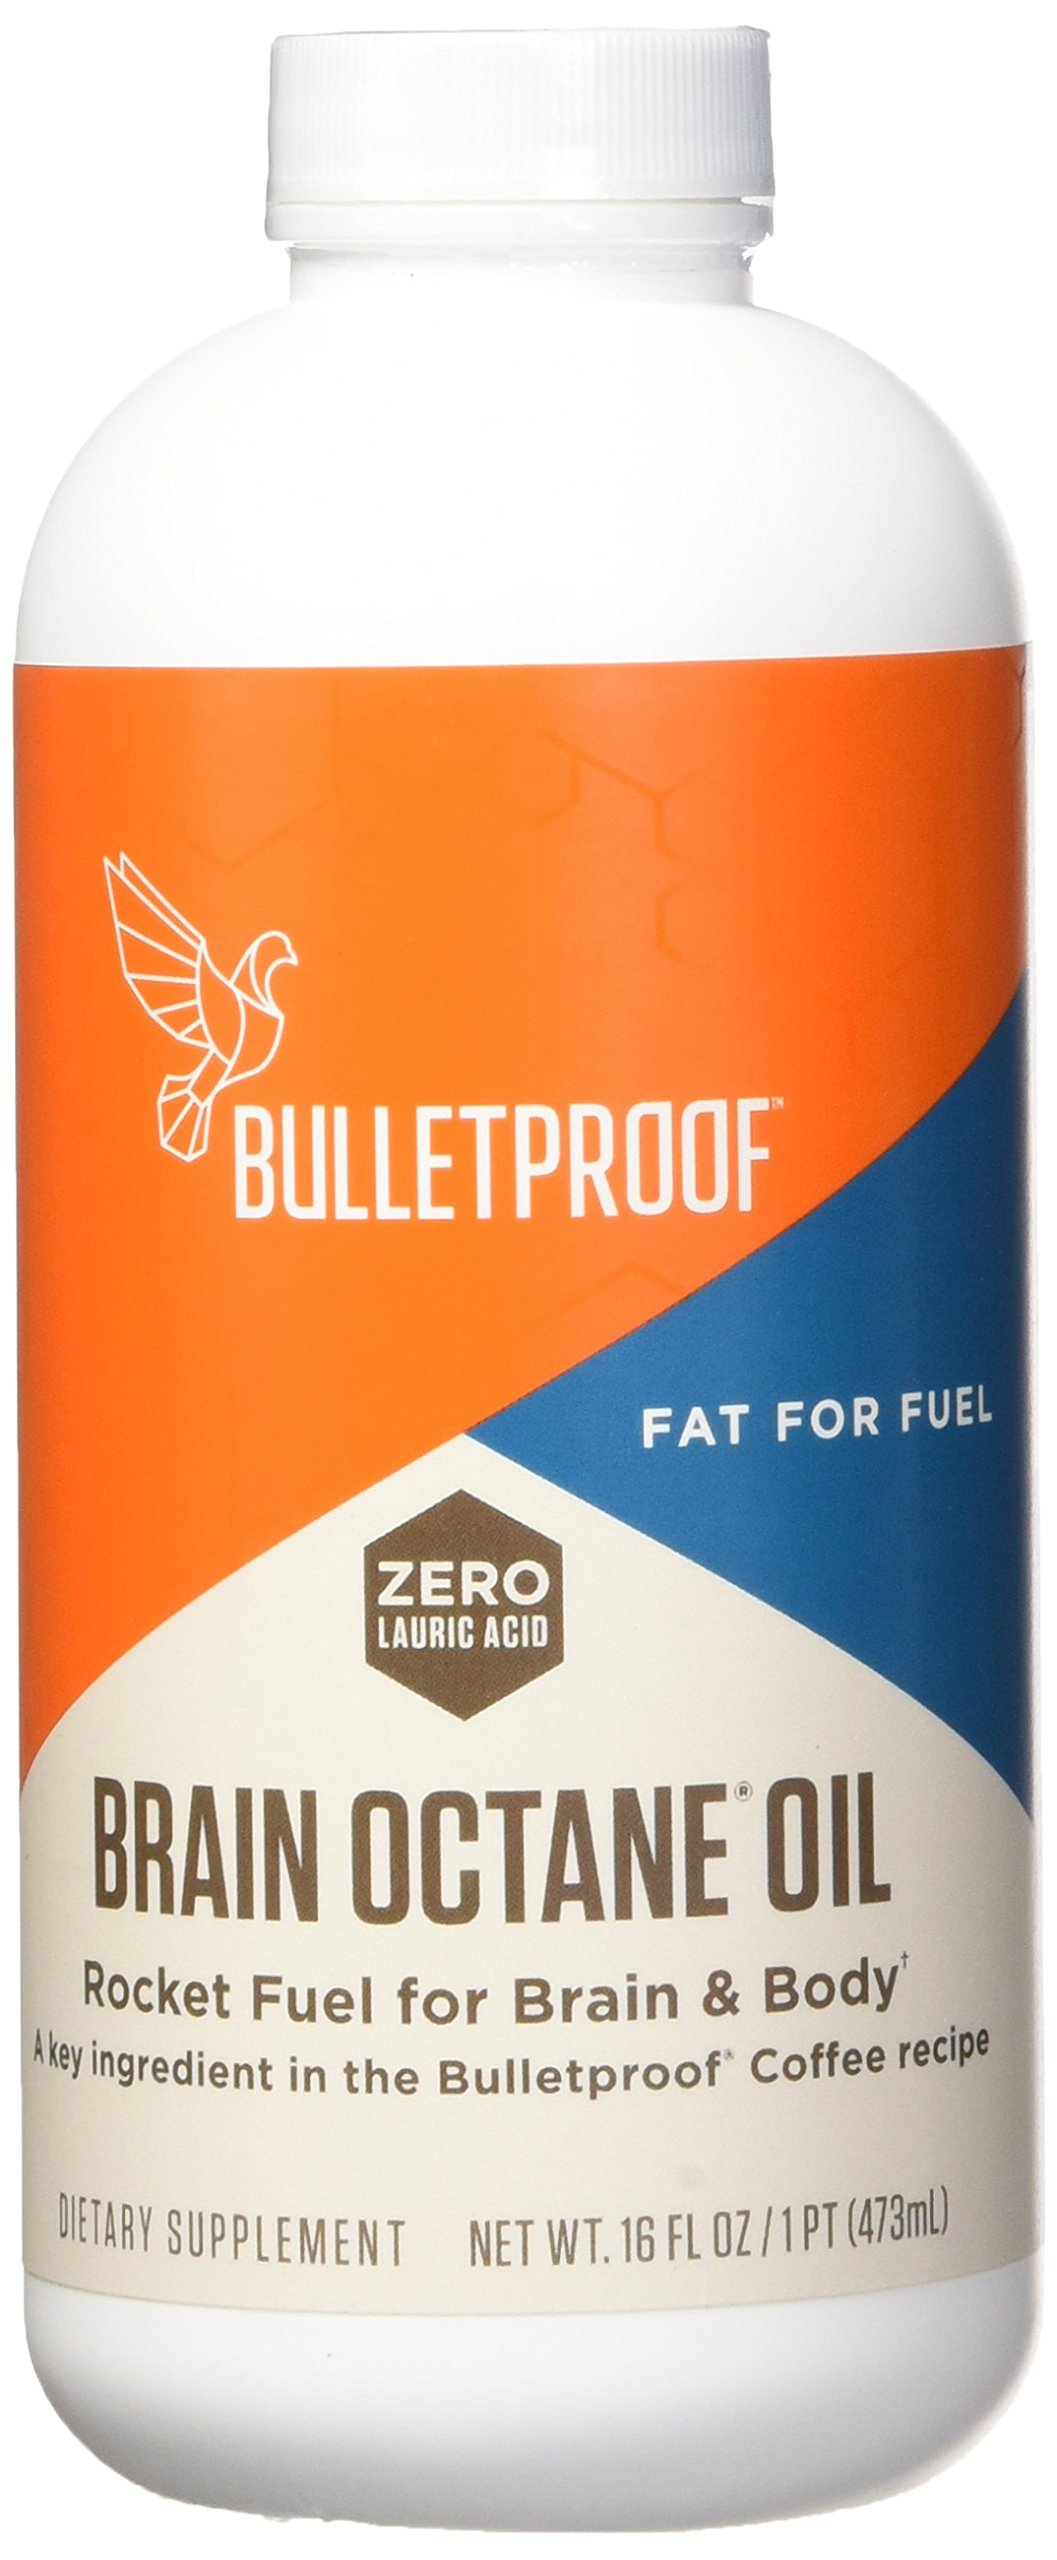 Bulletproof Brain Octane Oil - 16oz (2 Pack)